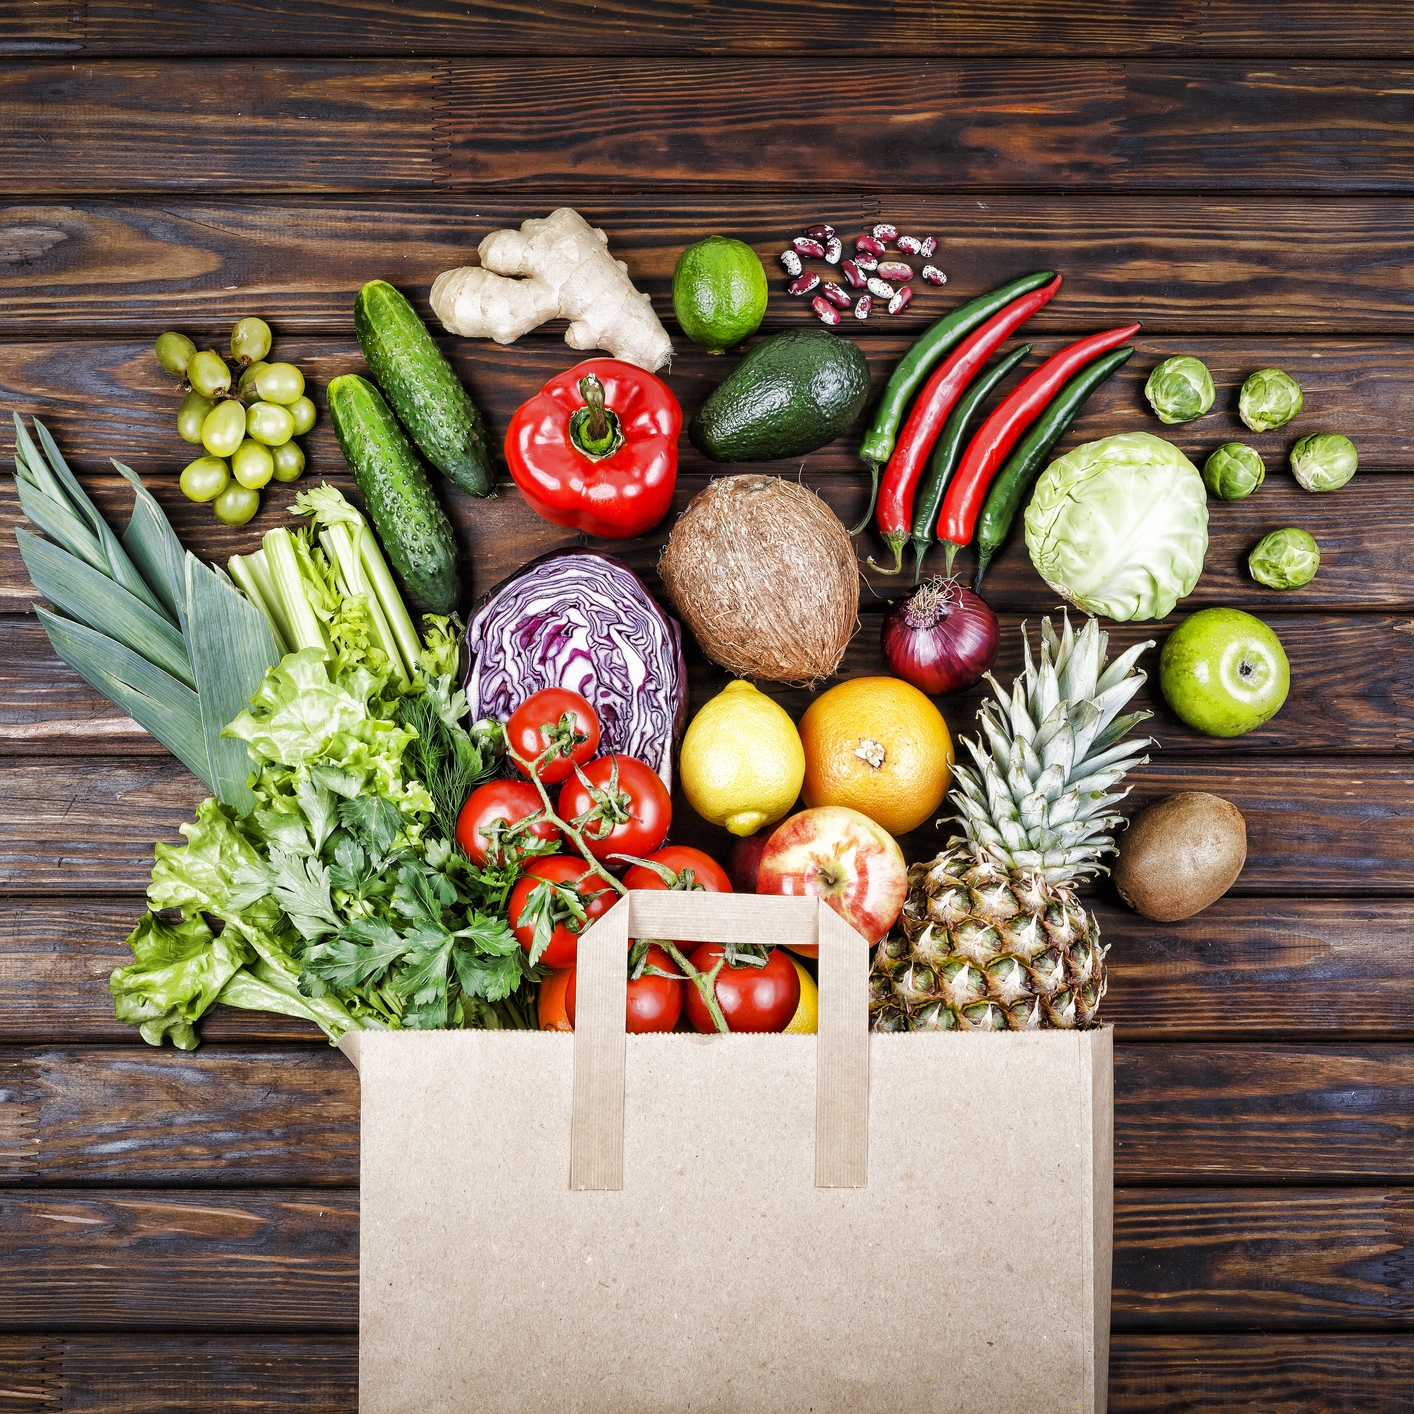 food background, Healthy food, bag, gastronomy, healthylifestyle, dieting, provision,